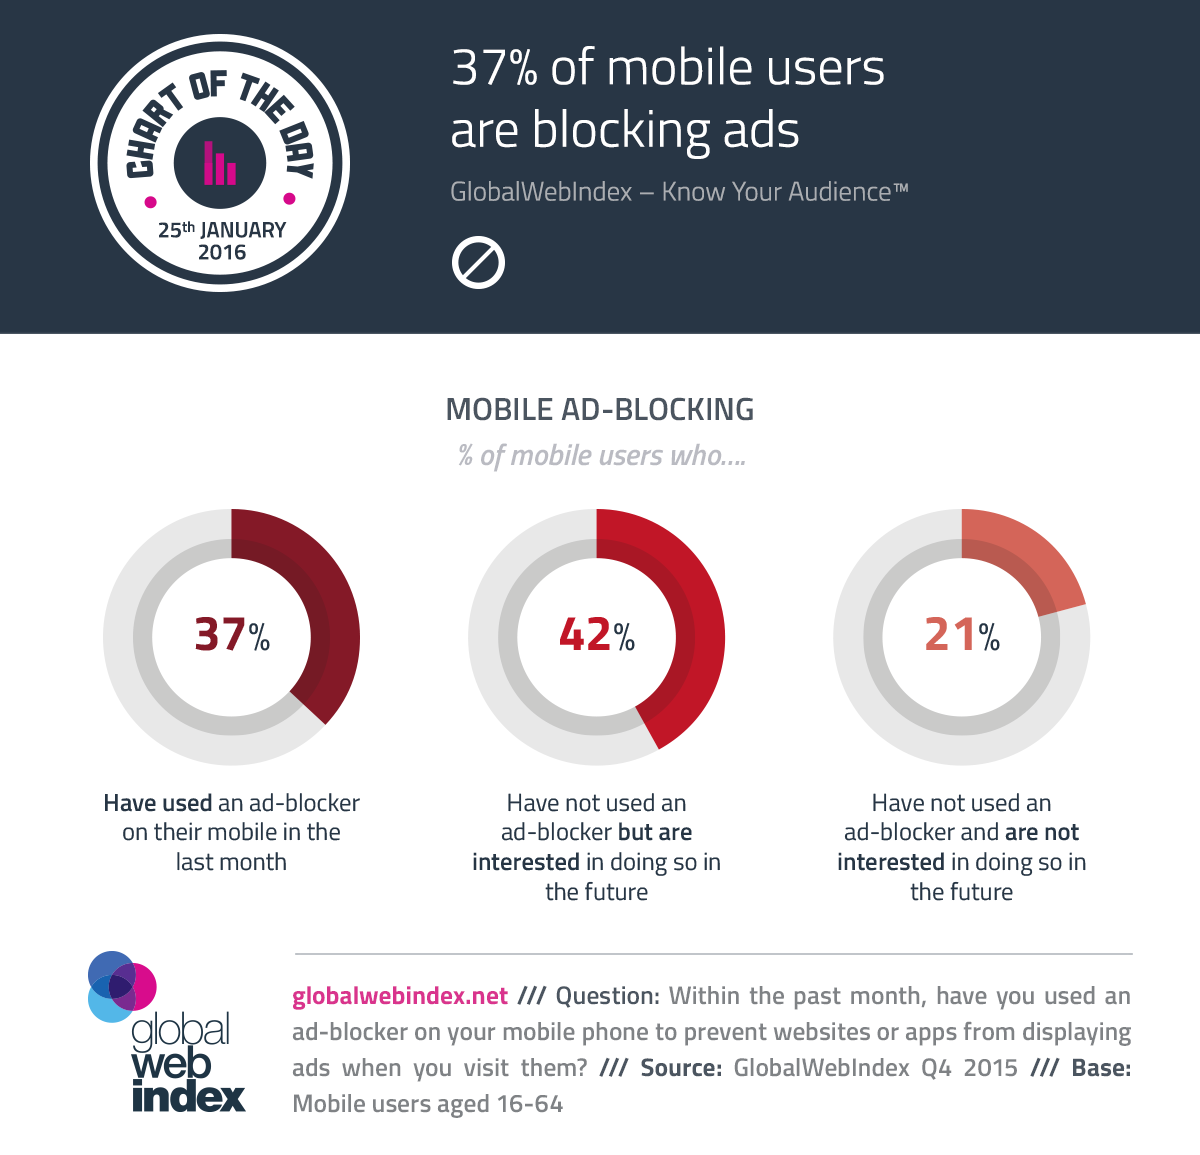 37% of mobile users are blocking ads